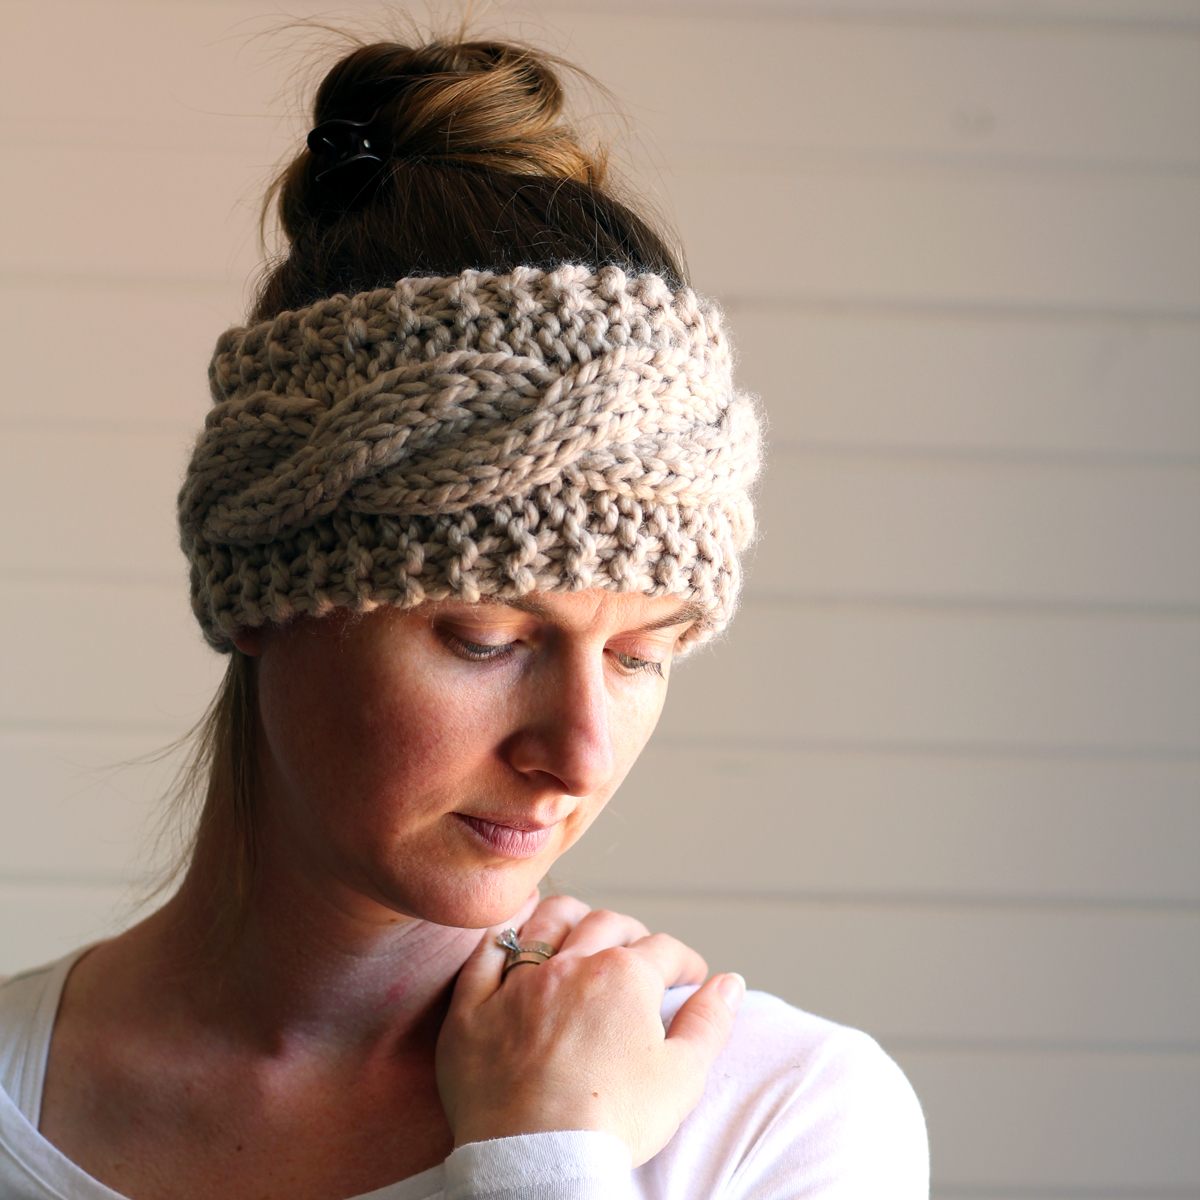 Knitted Headband Patterns With Flower Friendship Headband Knitting Pattern